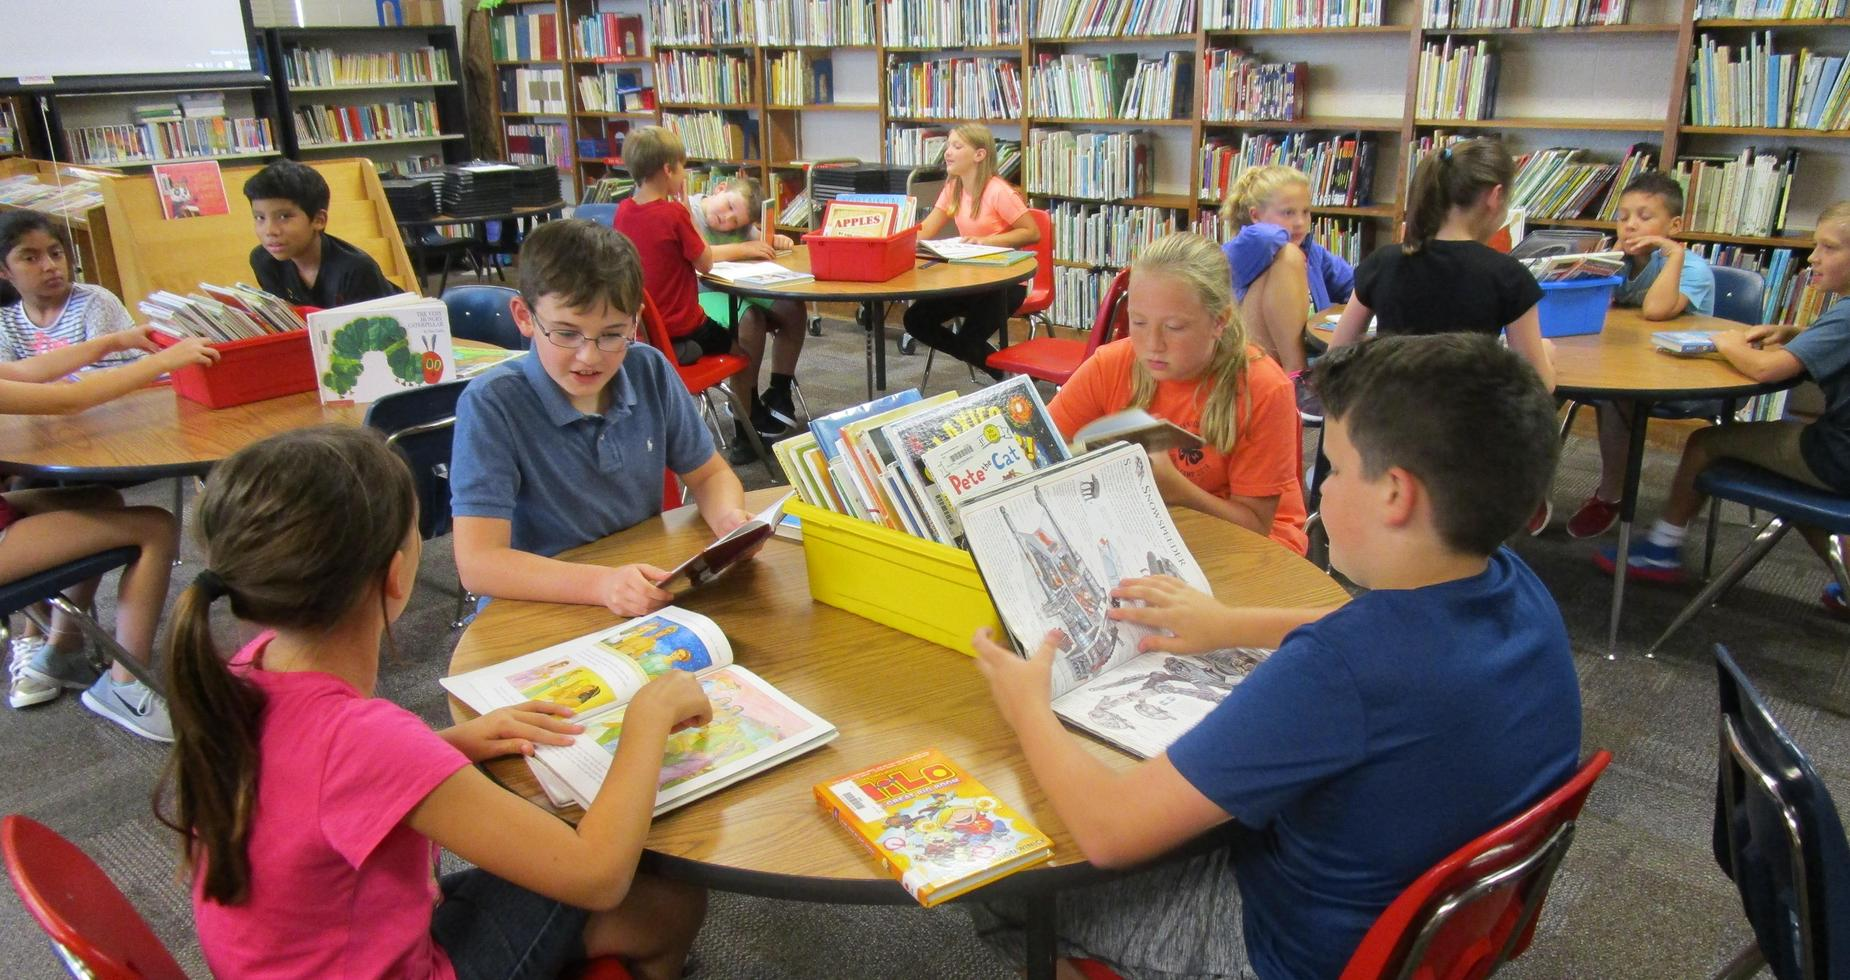 Fifth graders reading in the library